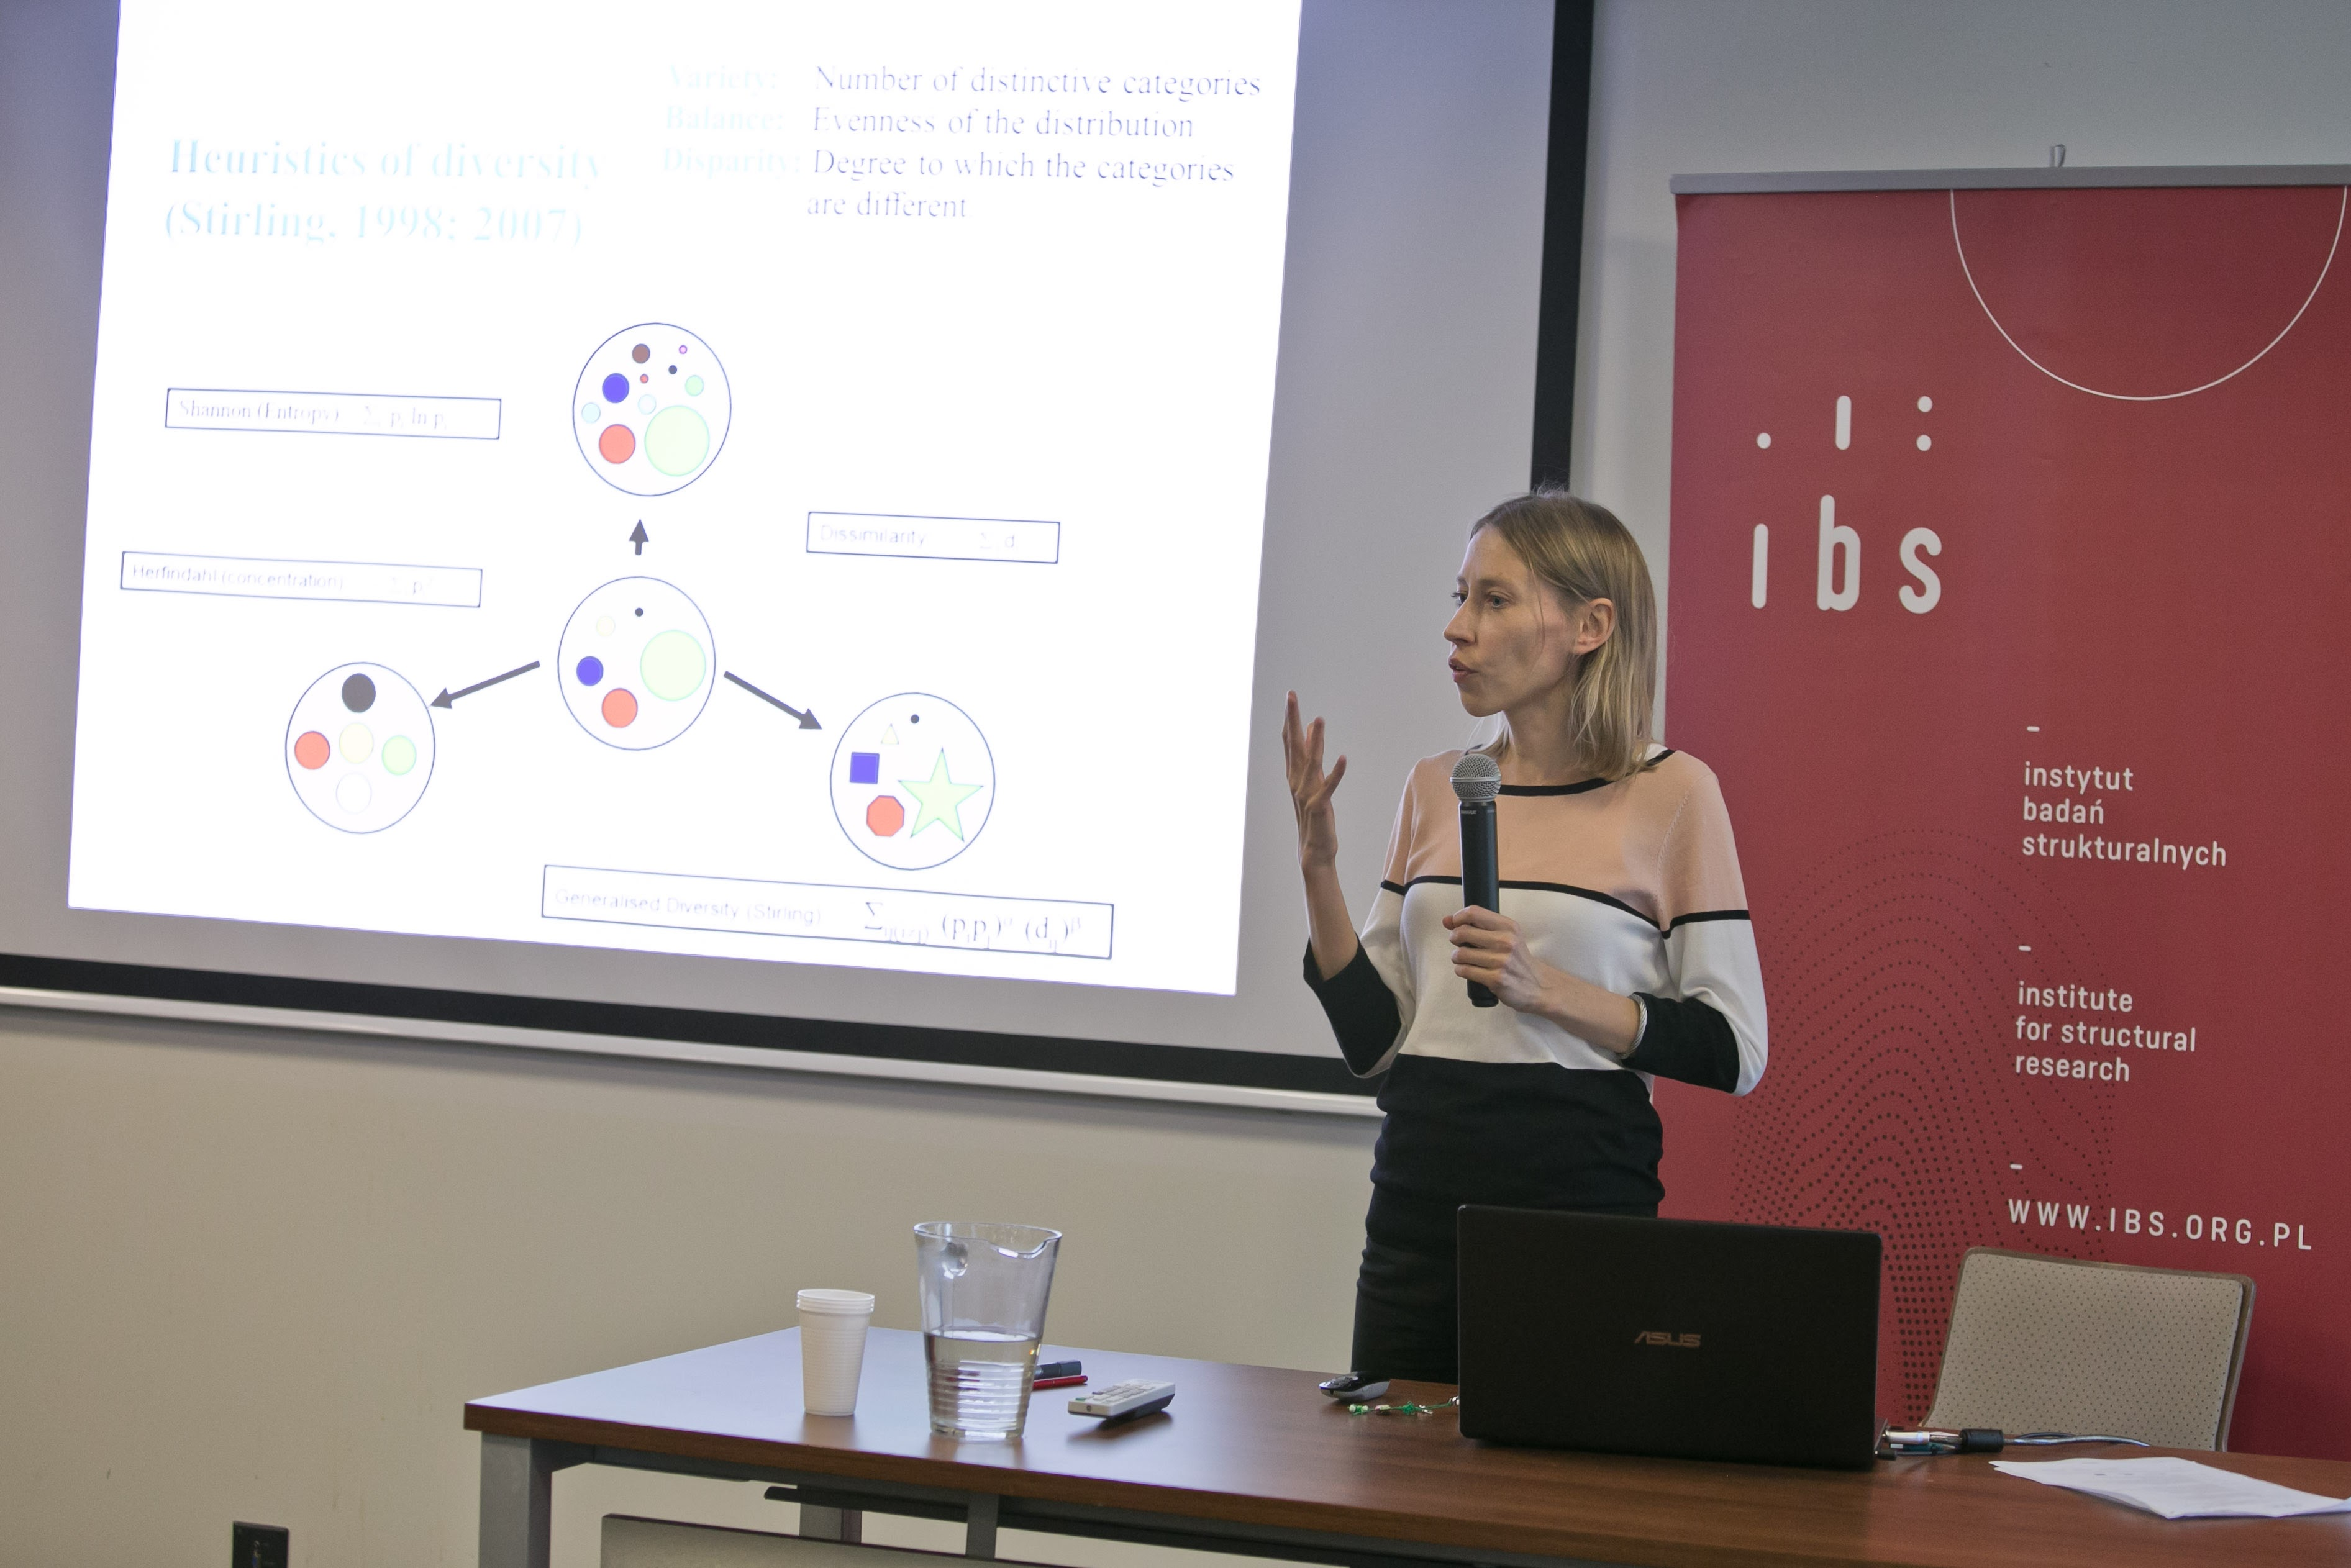 Dr hab. Karolina Safarzyńska (University of Warsaw) presenting patterns of investment in new technology during low-carbon transition